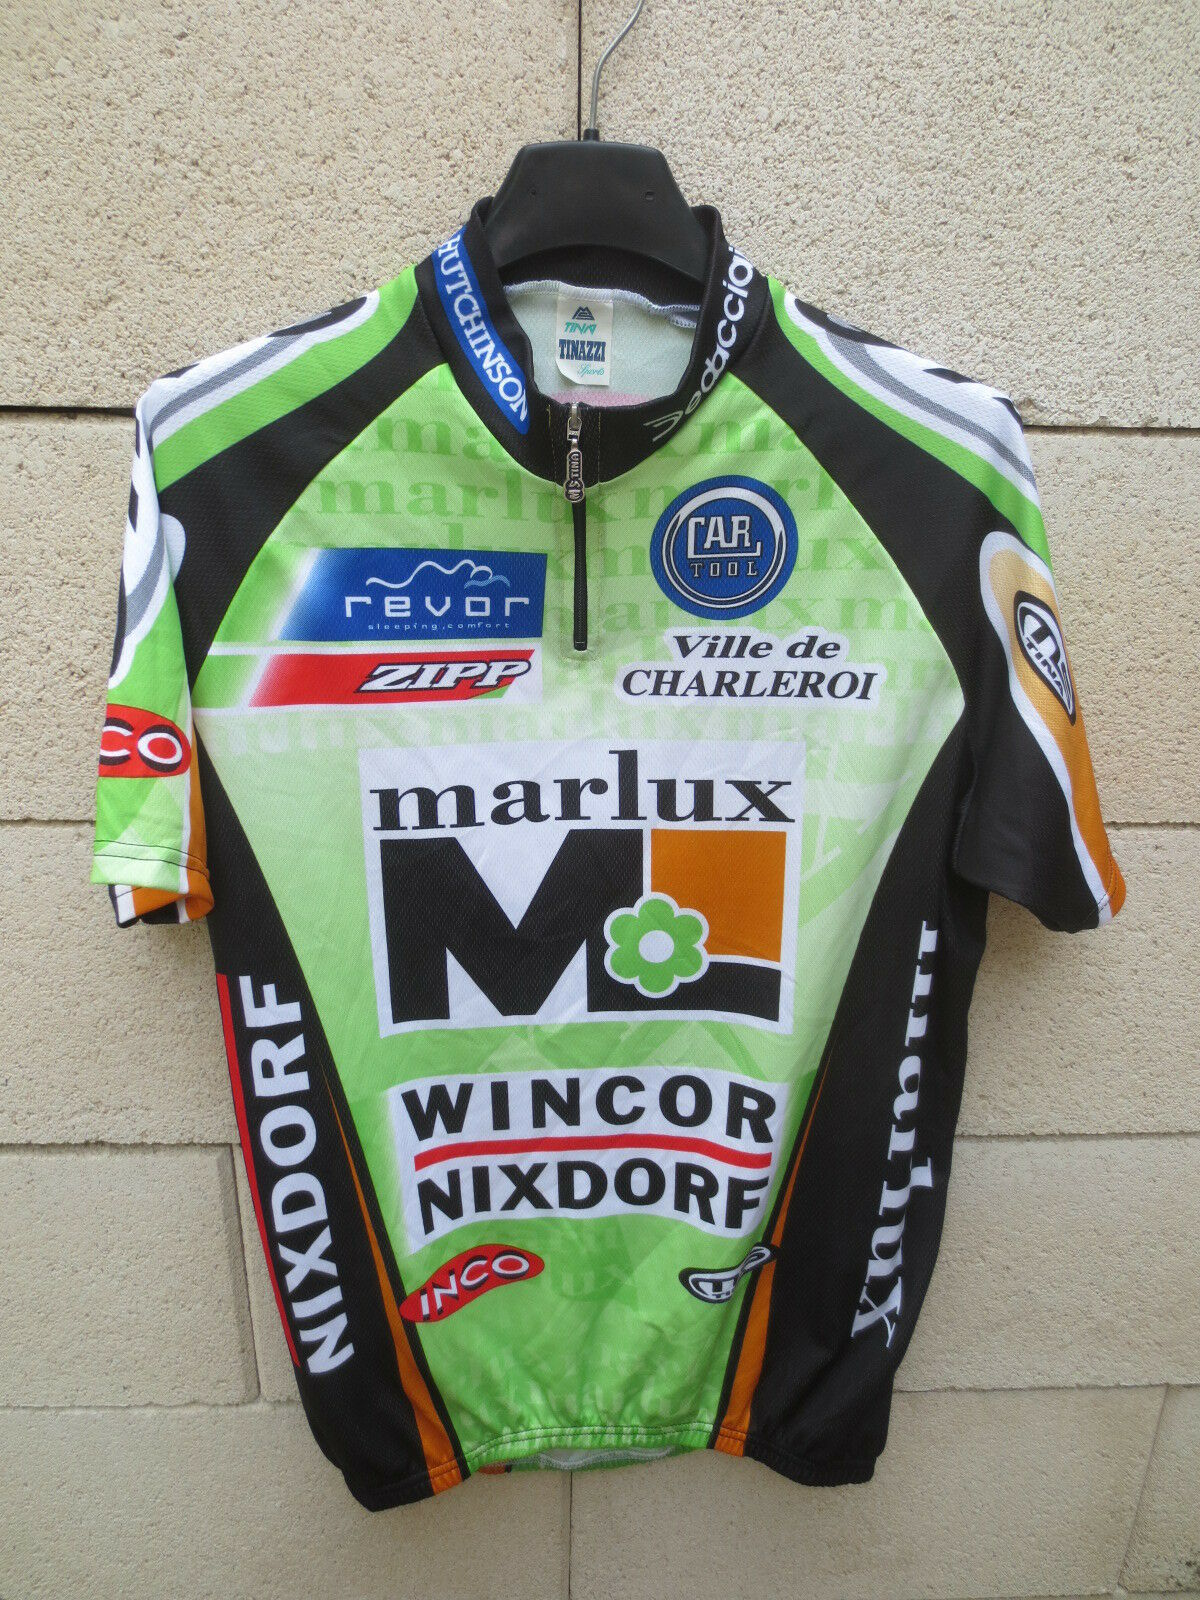 Maillot cycliste MARLUX WINCOR  NIXDORF CHARLEROI jersey shirt trikot 2003 5 L  first-class quality